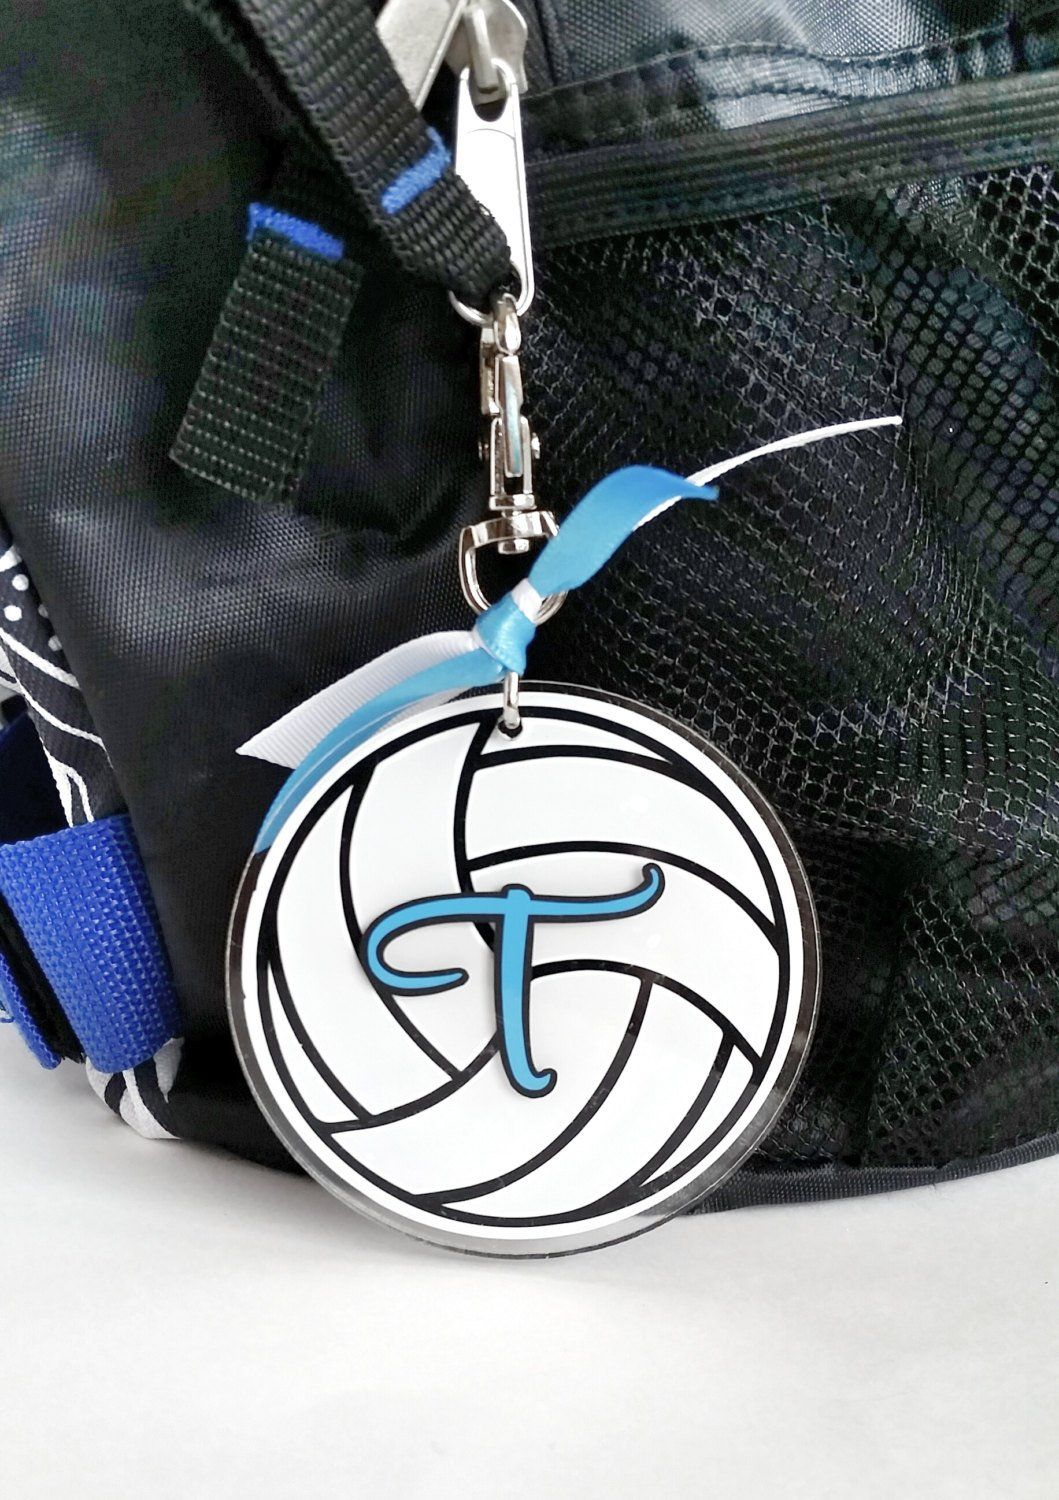 Volleyball Image By Ava Neushwander Volleyball Bag Volleyball Bag Tags Sports Bag Tags